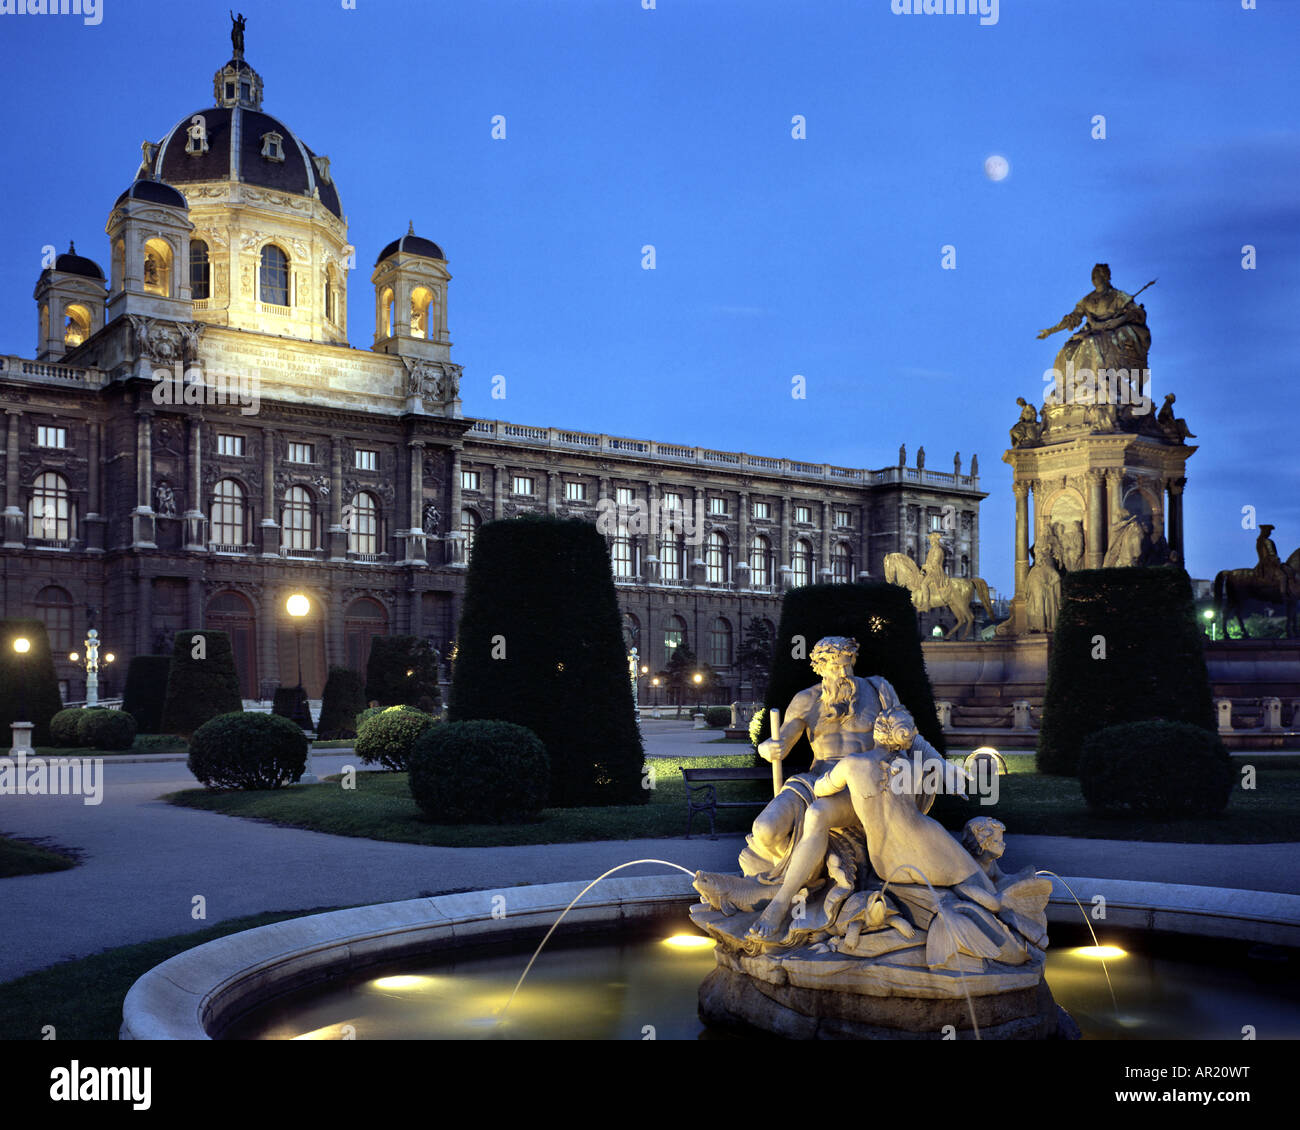 AT - VIENNA: Maria Theresia Park by night - Stock Image